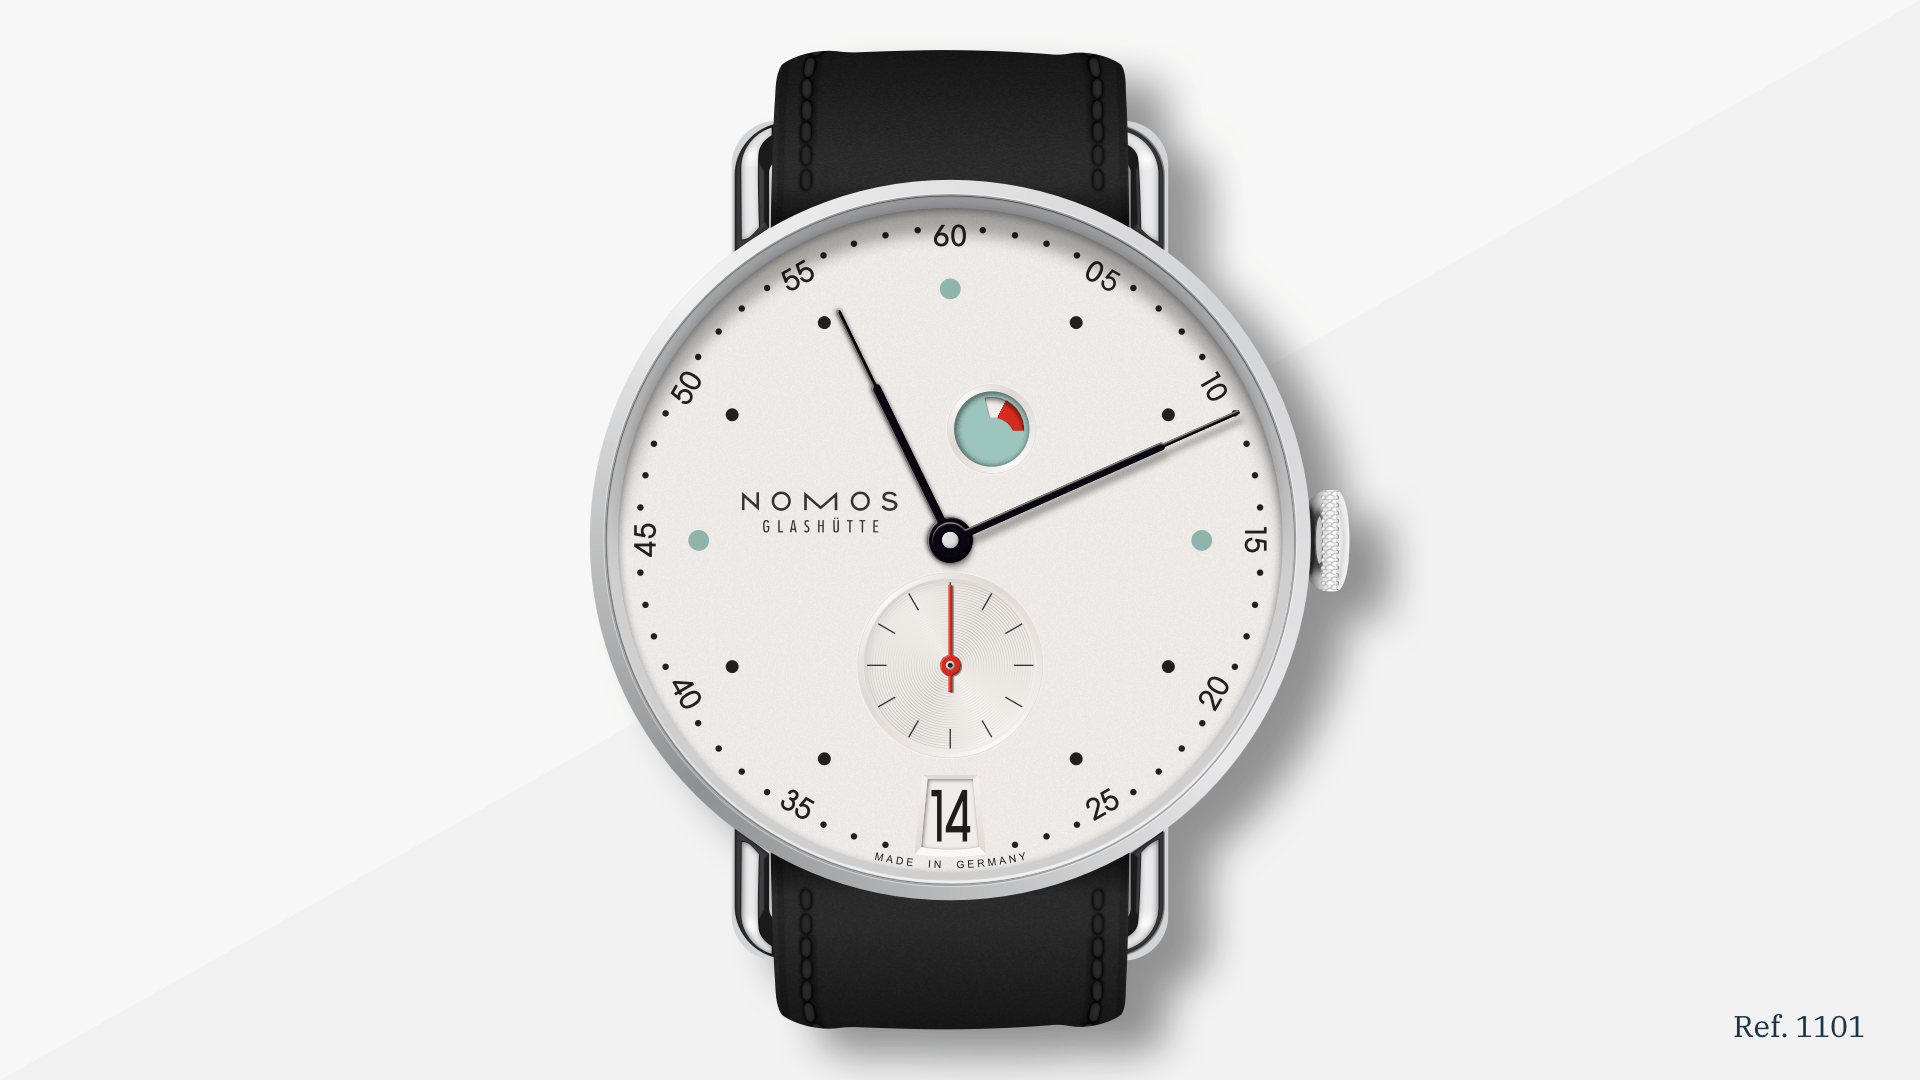 An illustrated image showing a Nomos Metro Date Power Reserve watch that Nikola recreated in Sketch using Vector shapes.